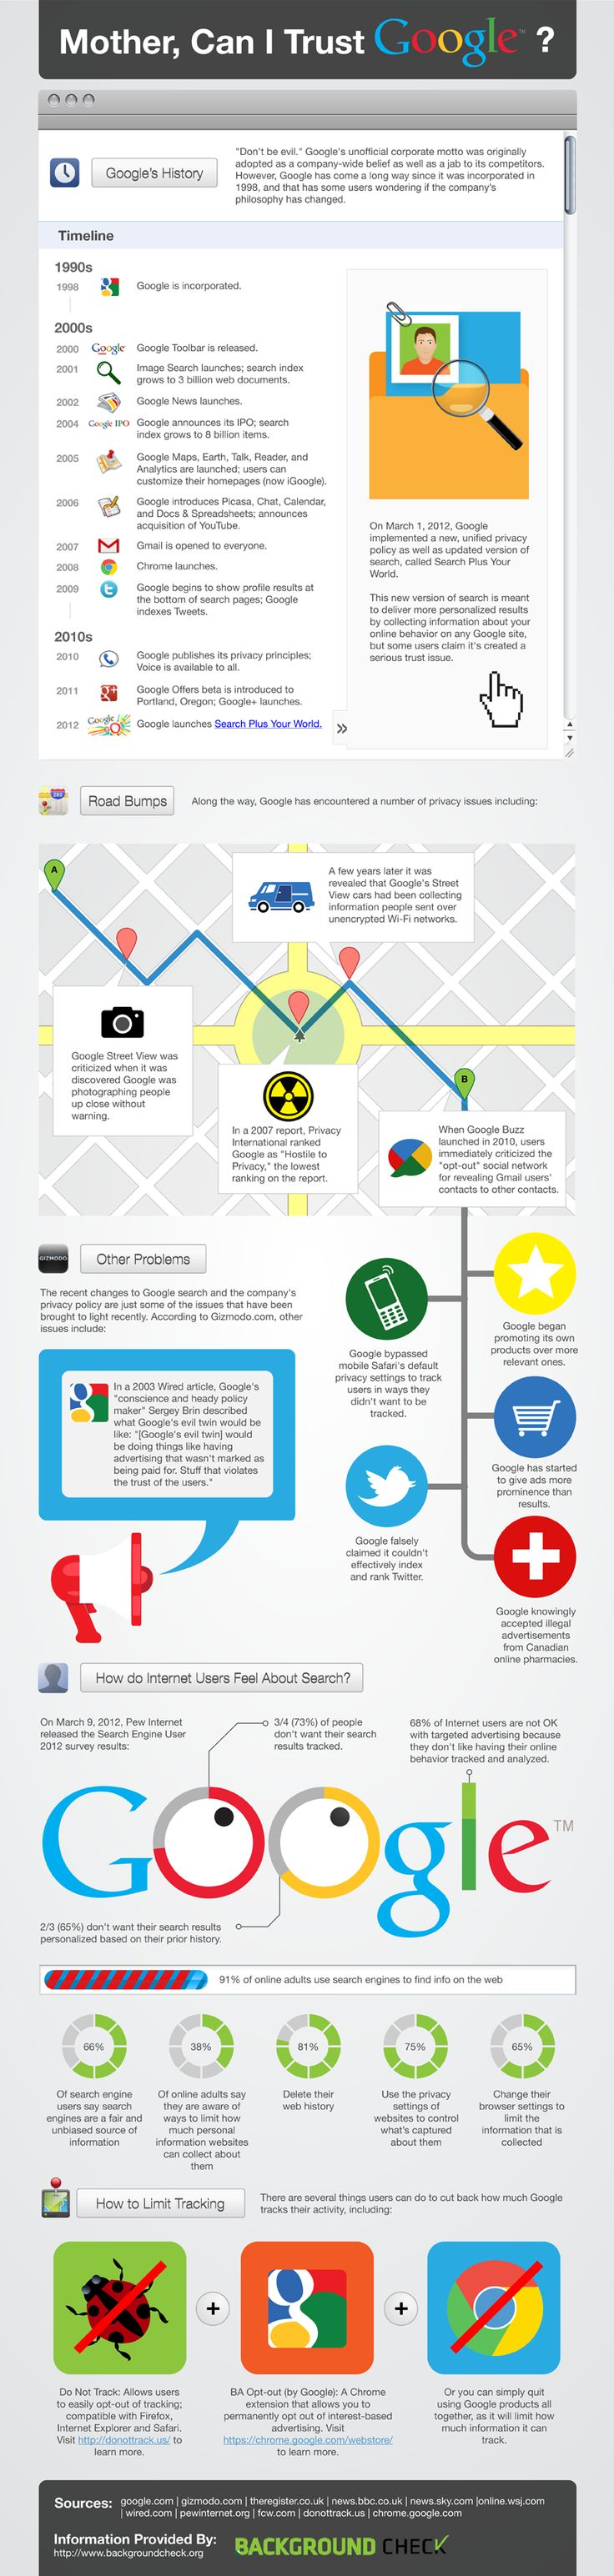 INFOGRAPHIC: Are You Protecting Your Privacy on Google+?: Technology Infographic, Google Driving, Social Media, Angel Cards, Backgrounds Check, Trust Google, Search Engine, Infographic Internet, Google Infographic